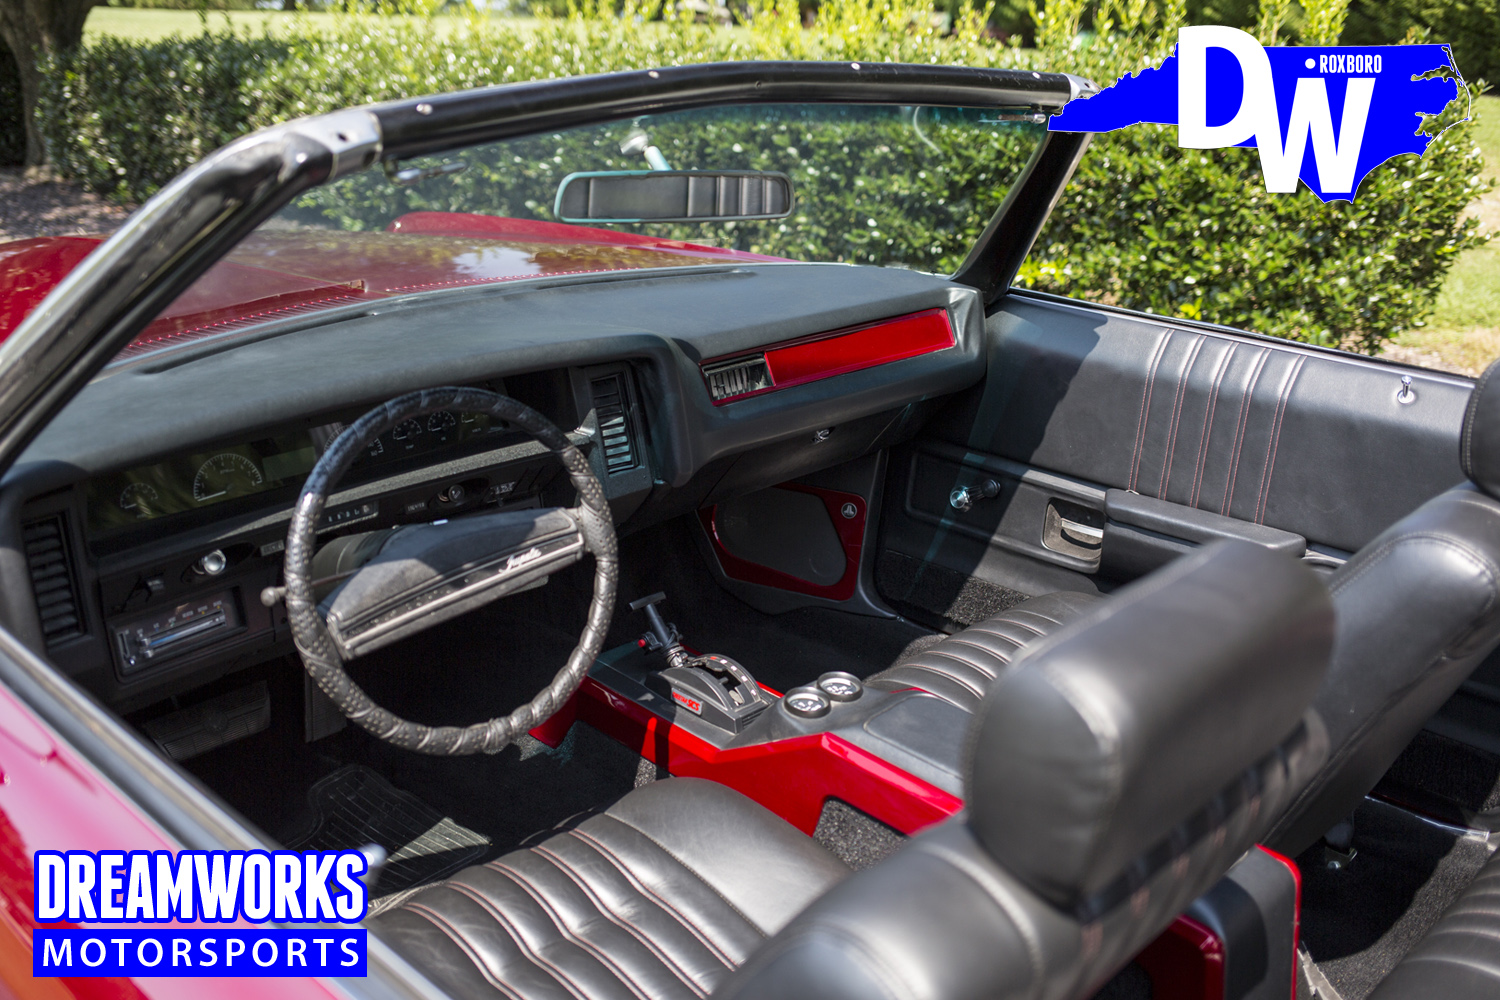 Donk-on-Forgiatos-With-JL-Audio-System-by-Dreamworksmotorsports-7.jpg